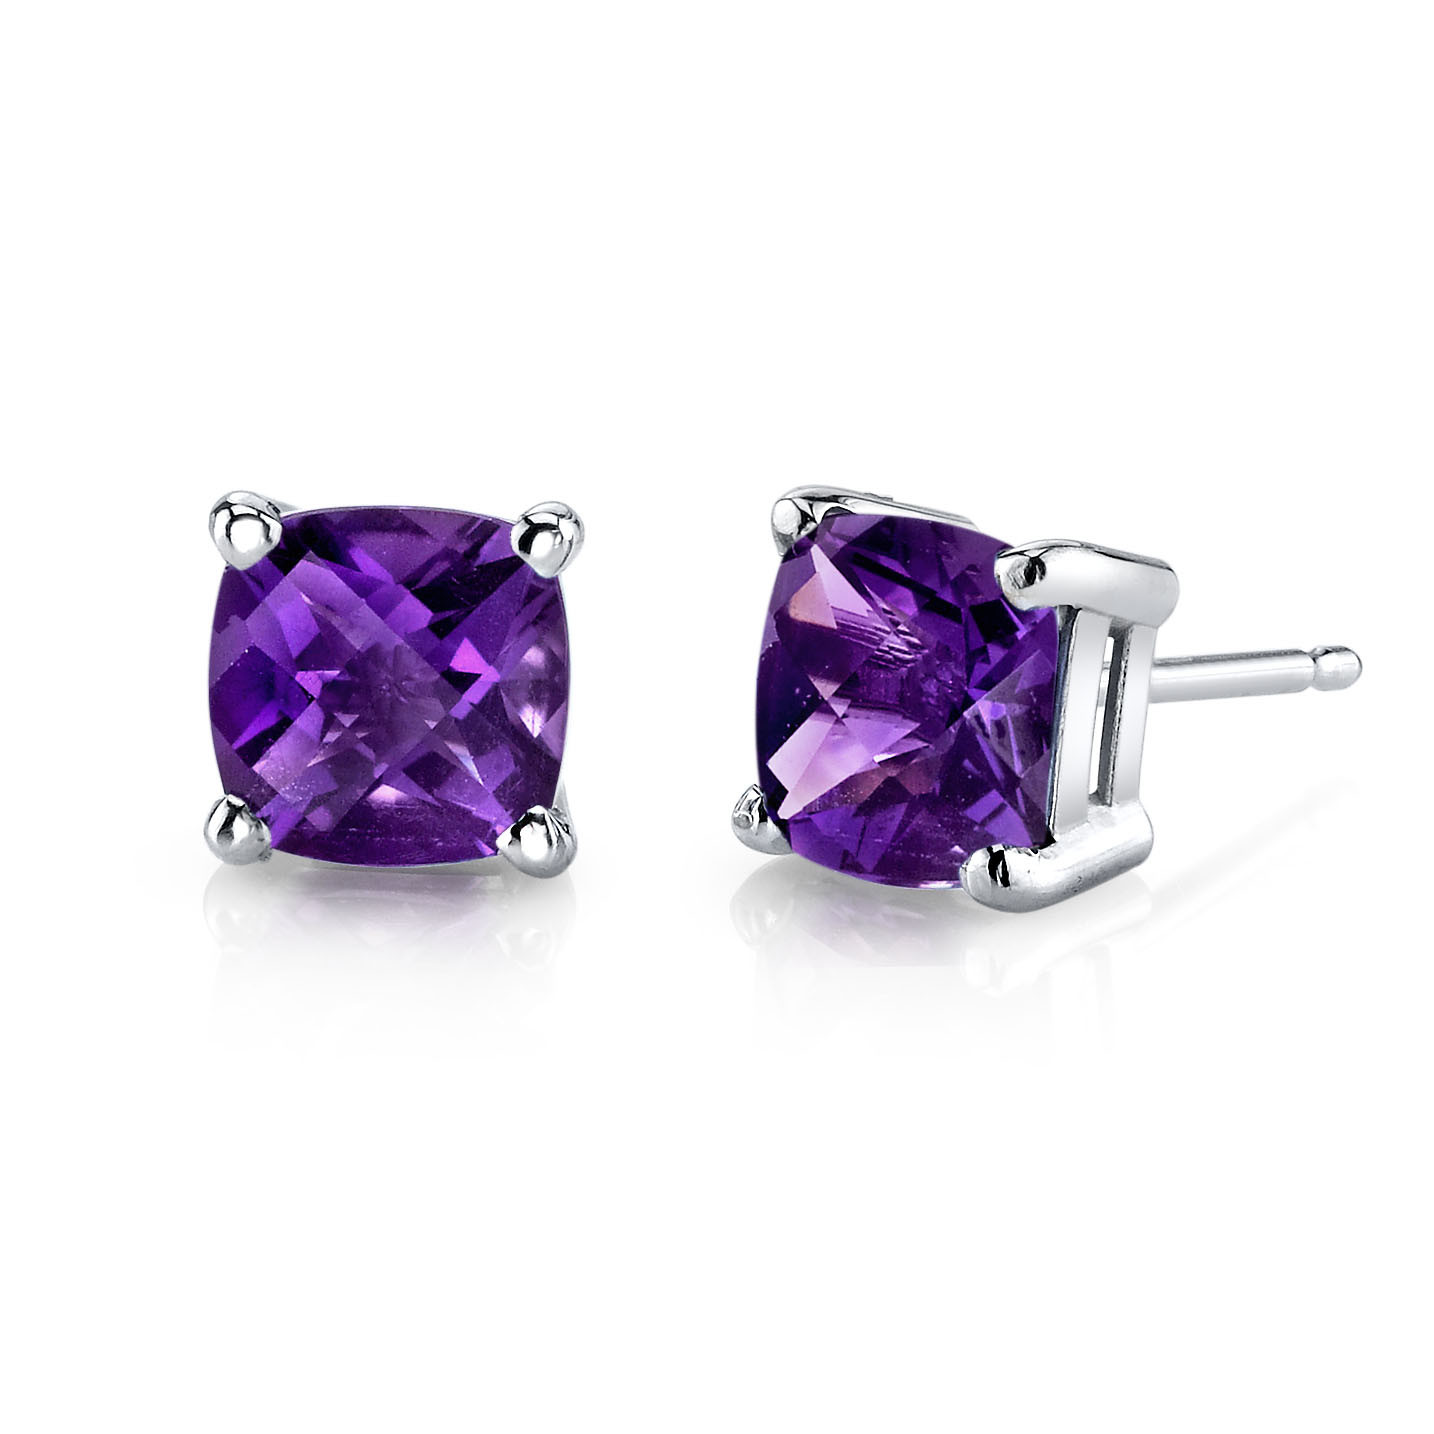 R149327w 519 Instock Https Rubyandoscar Cushion Cut Amethyst Stud Earrings In White Gold Ruby Oscar